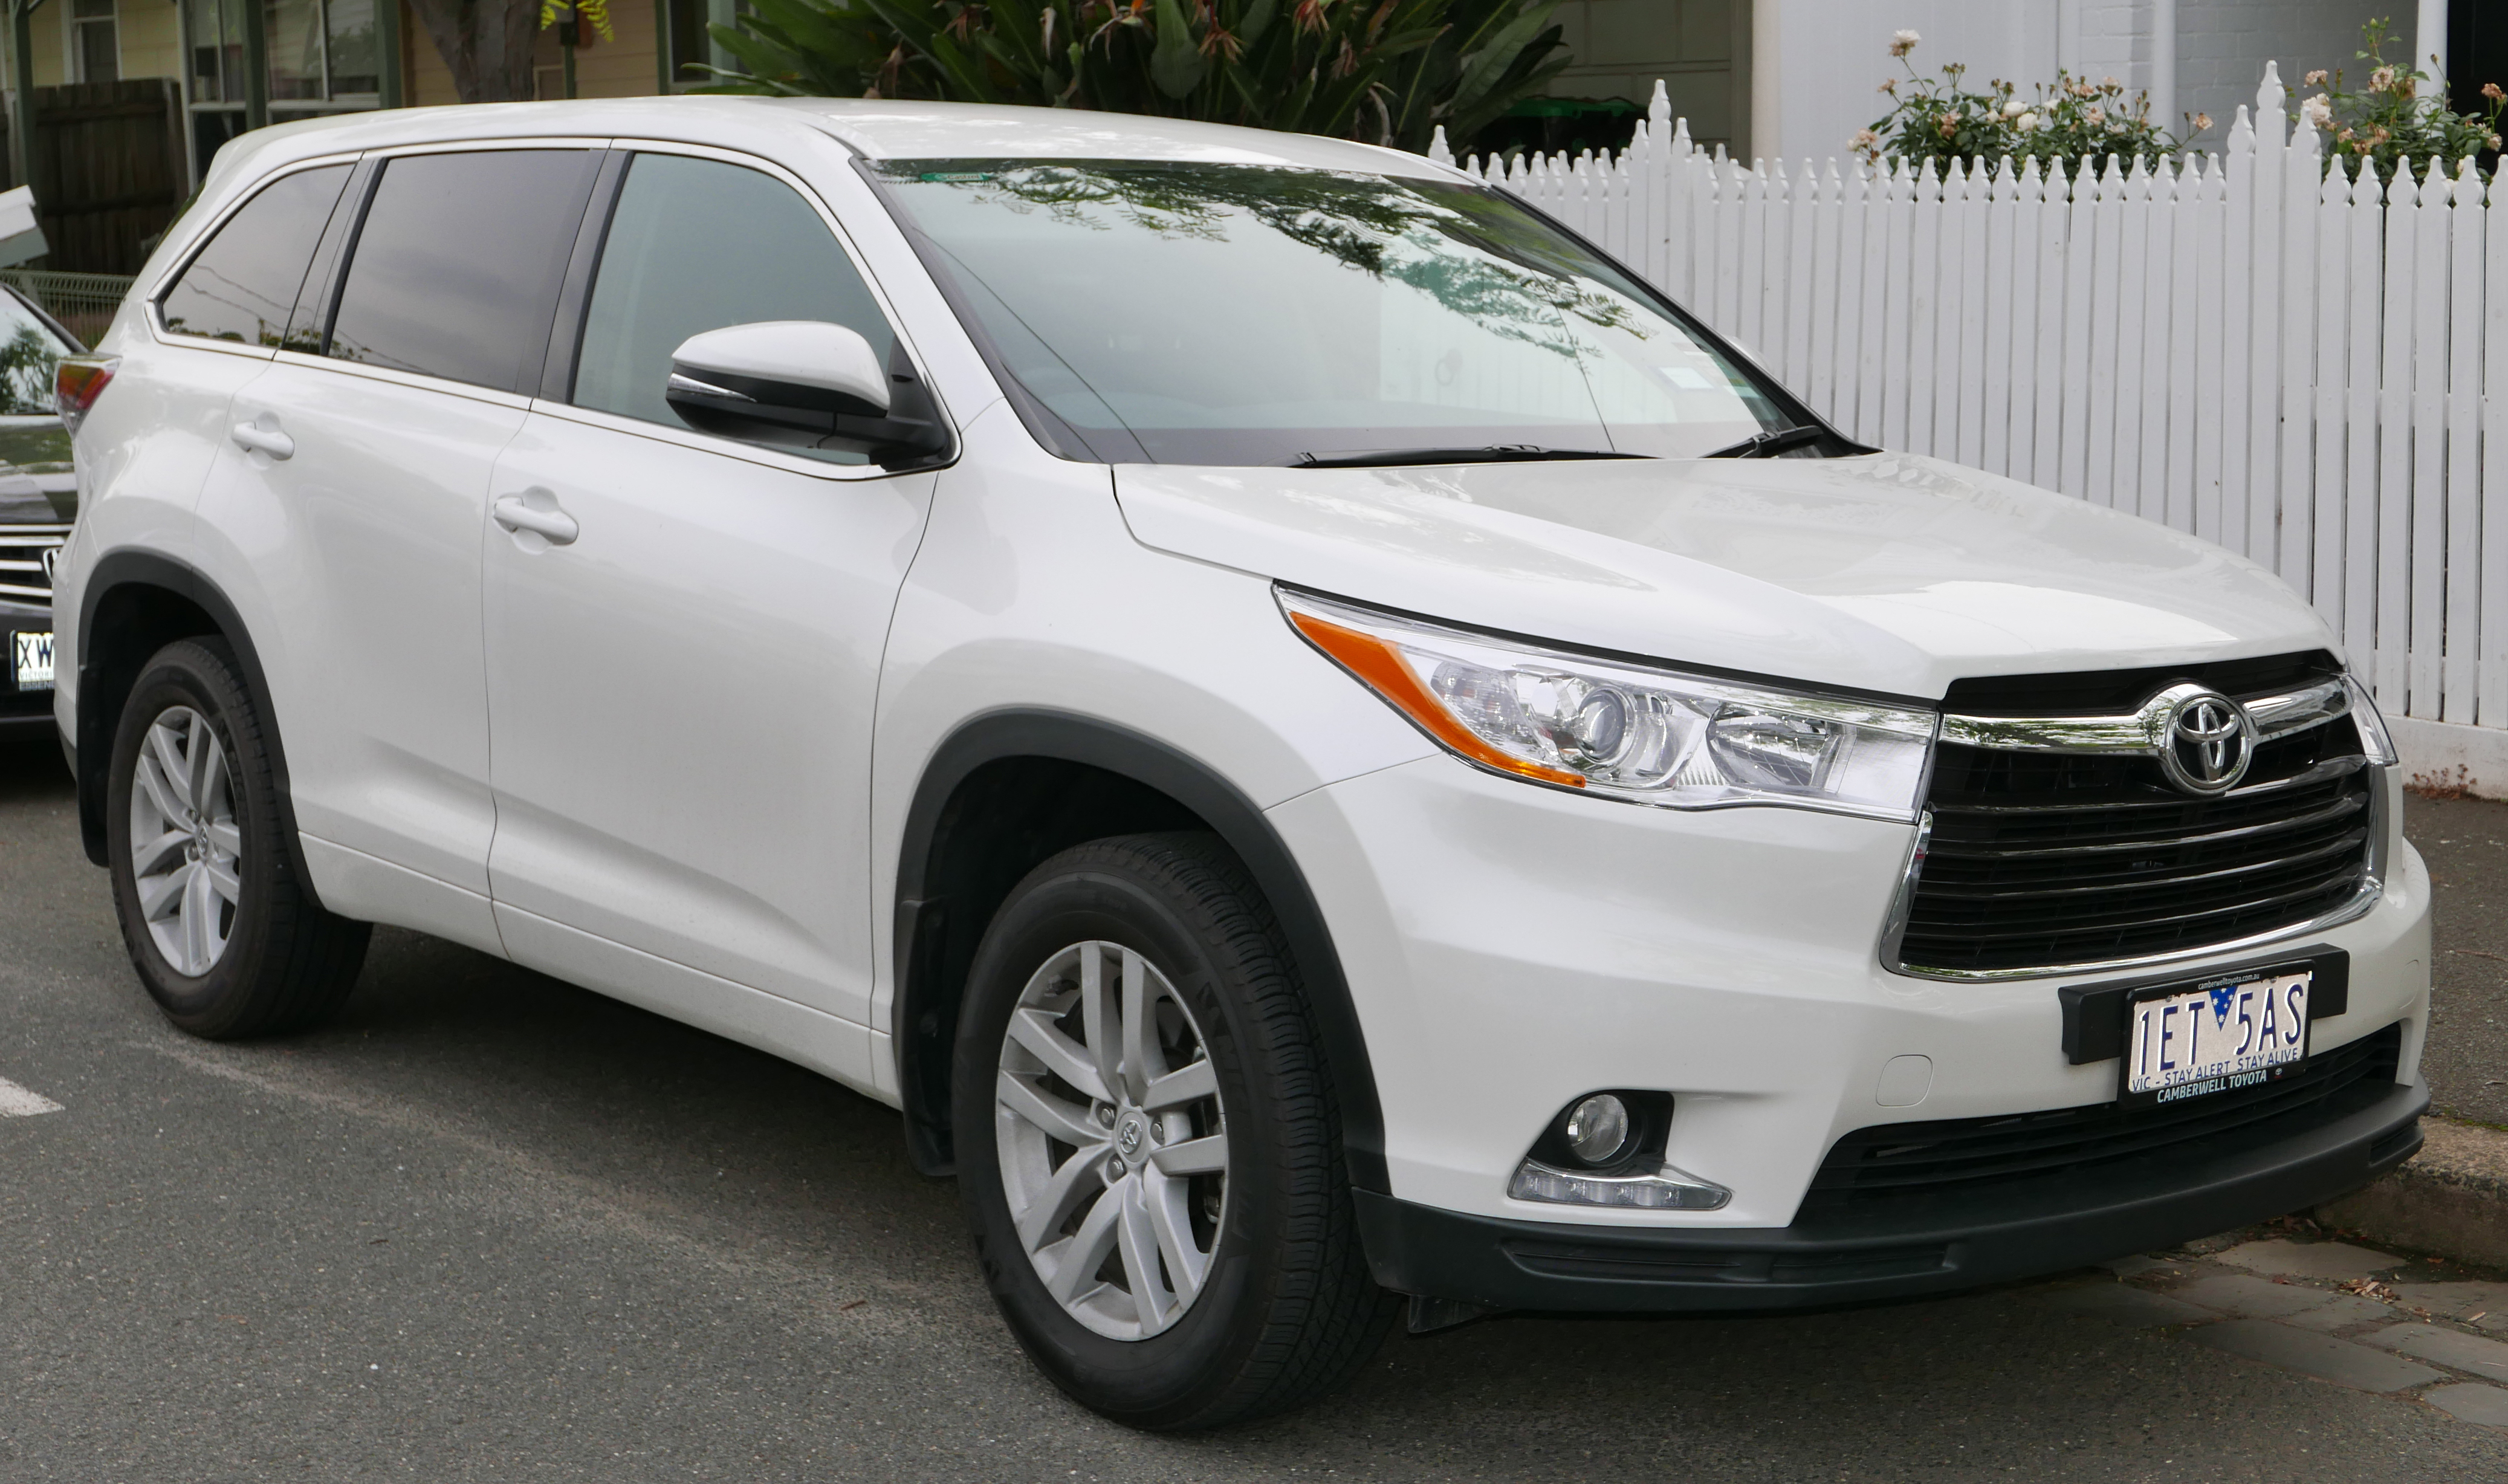 toyota pictures nation vs forum truck reviews highlander generation and forums car